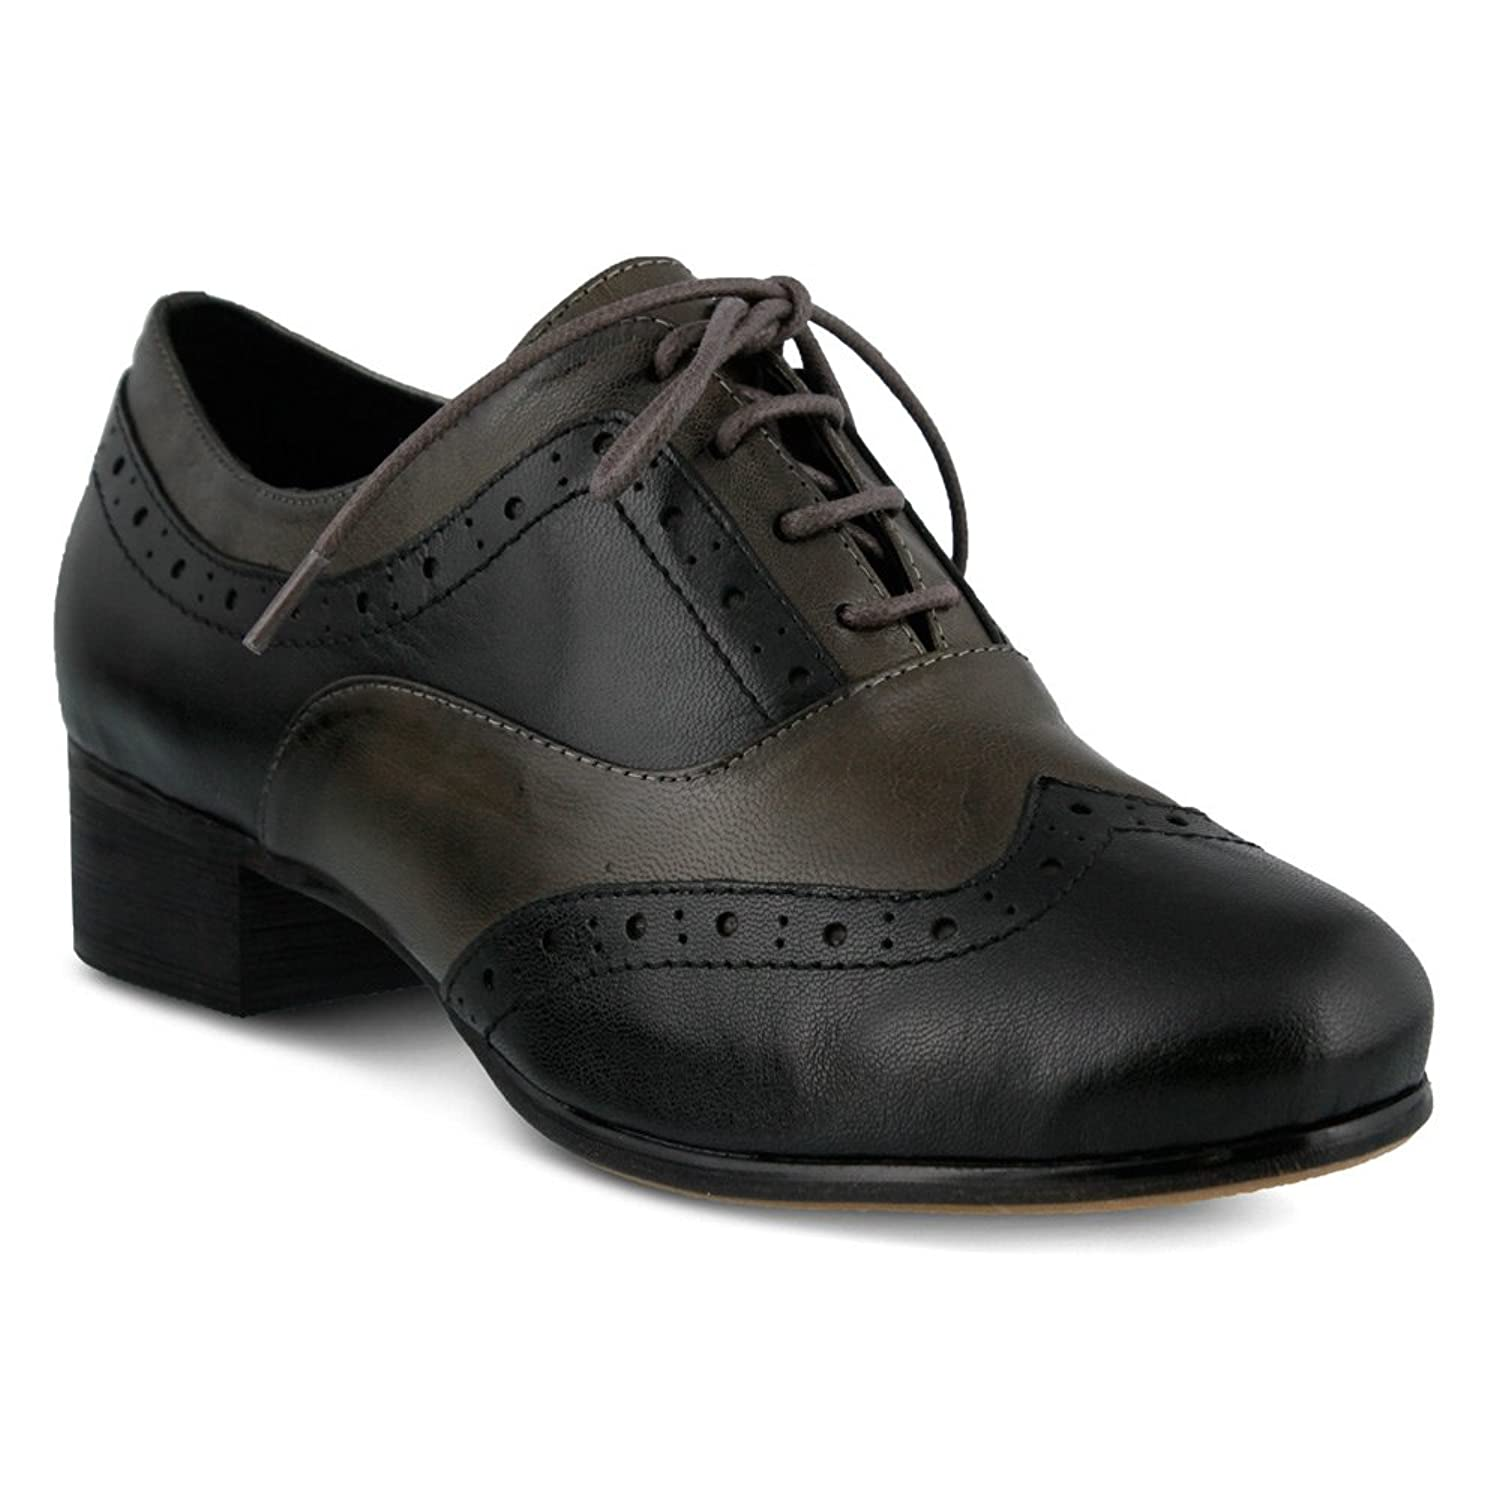 1940s Womens Shoe Styles Spring Step Womens Kiley Leather Rubber Oxfords $129.99 AT vintagedancer.com